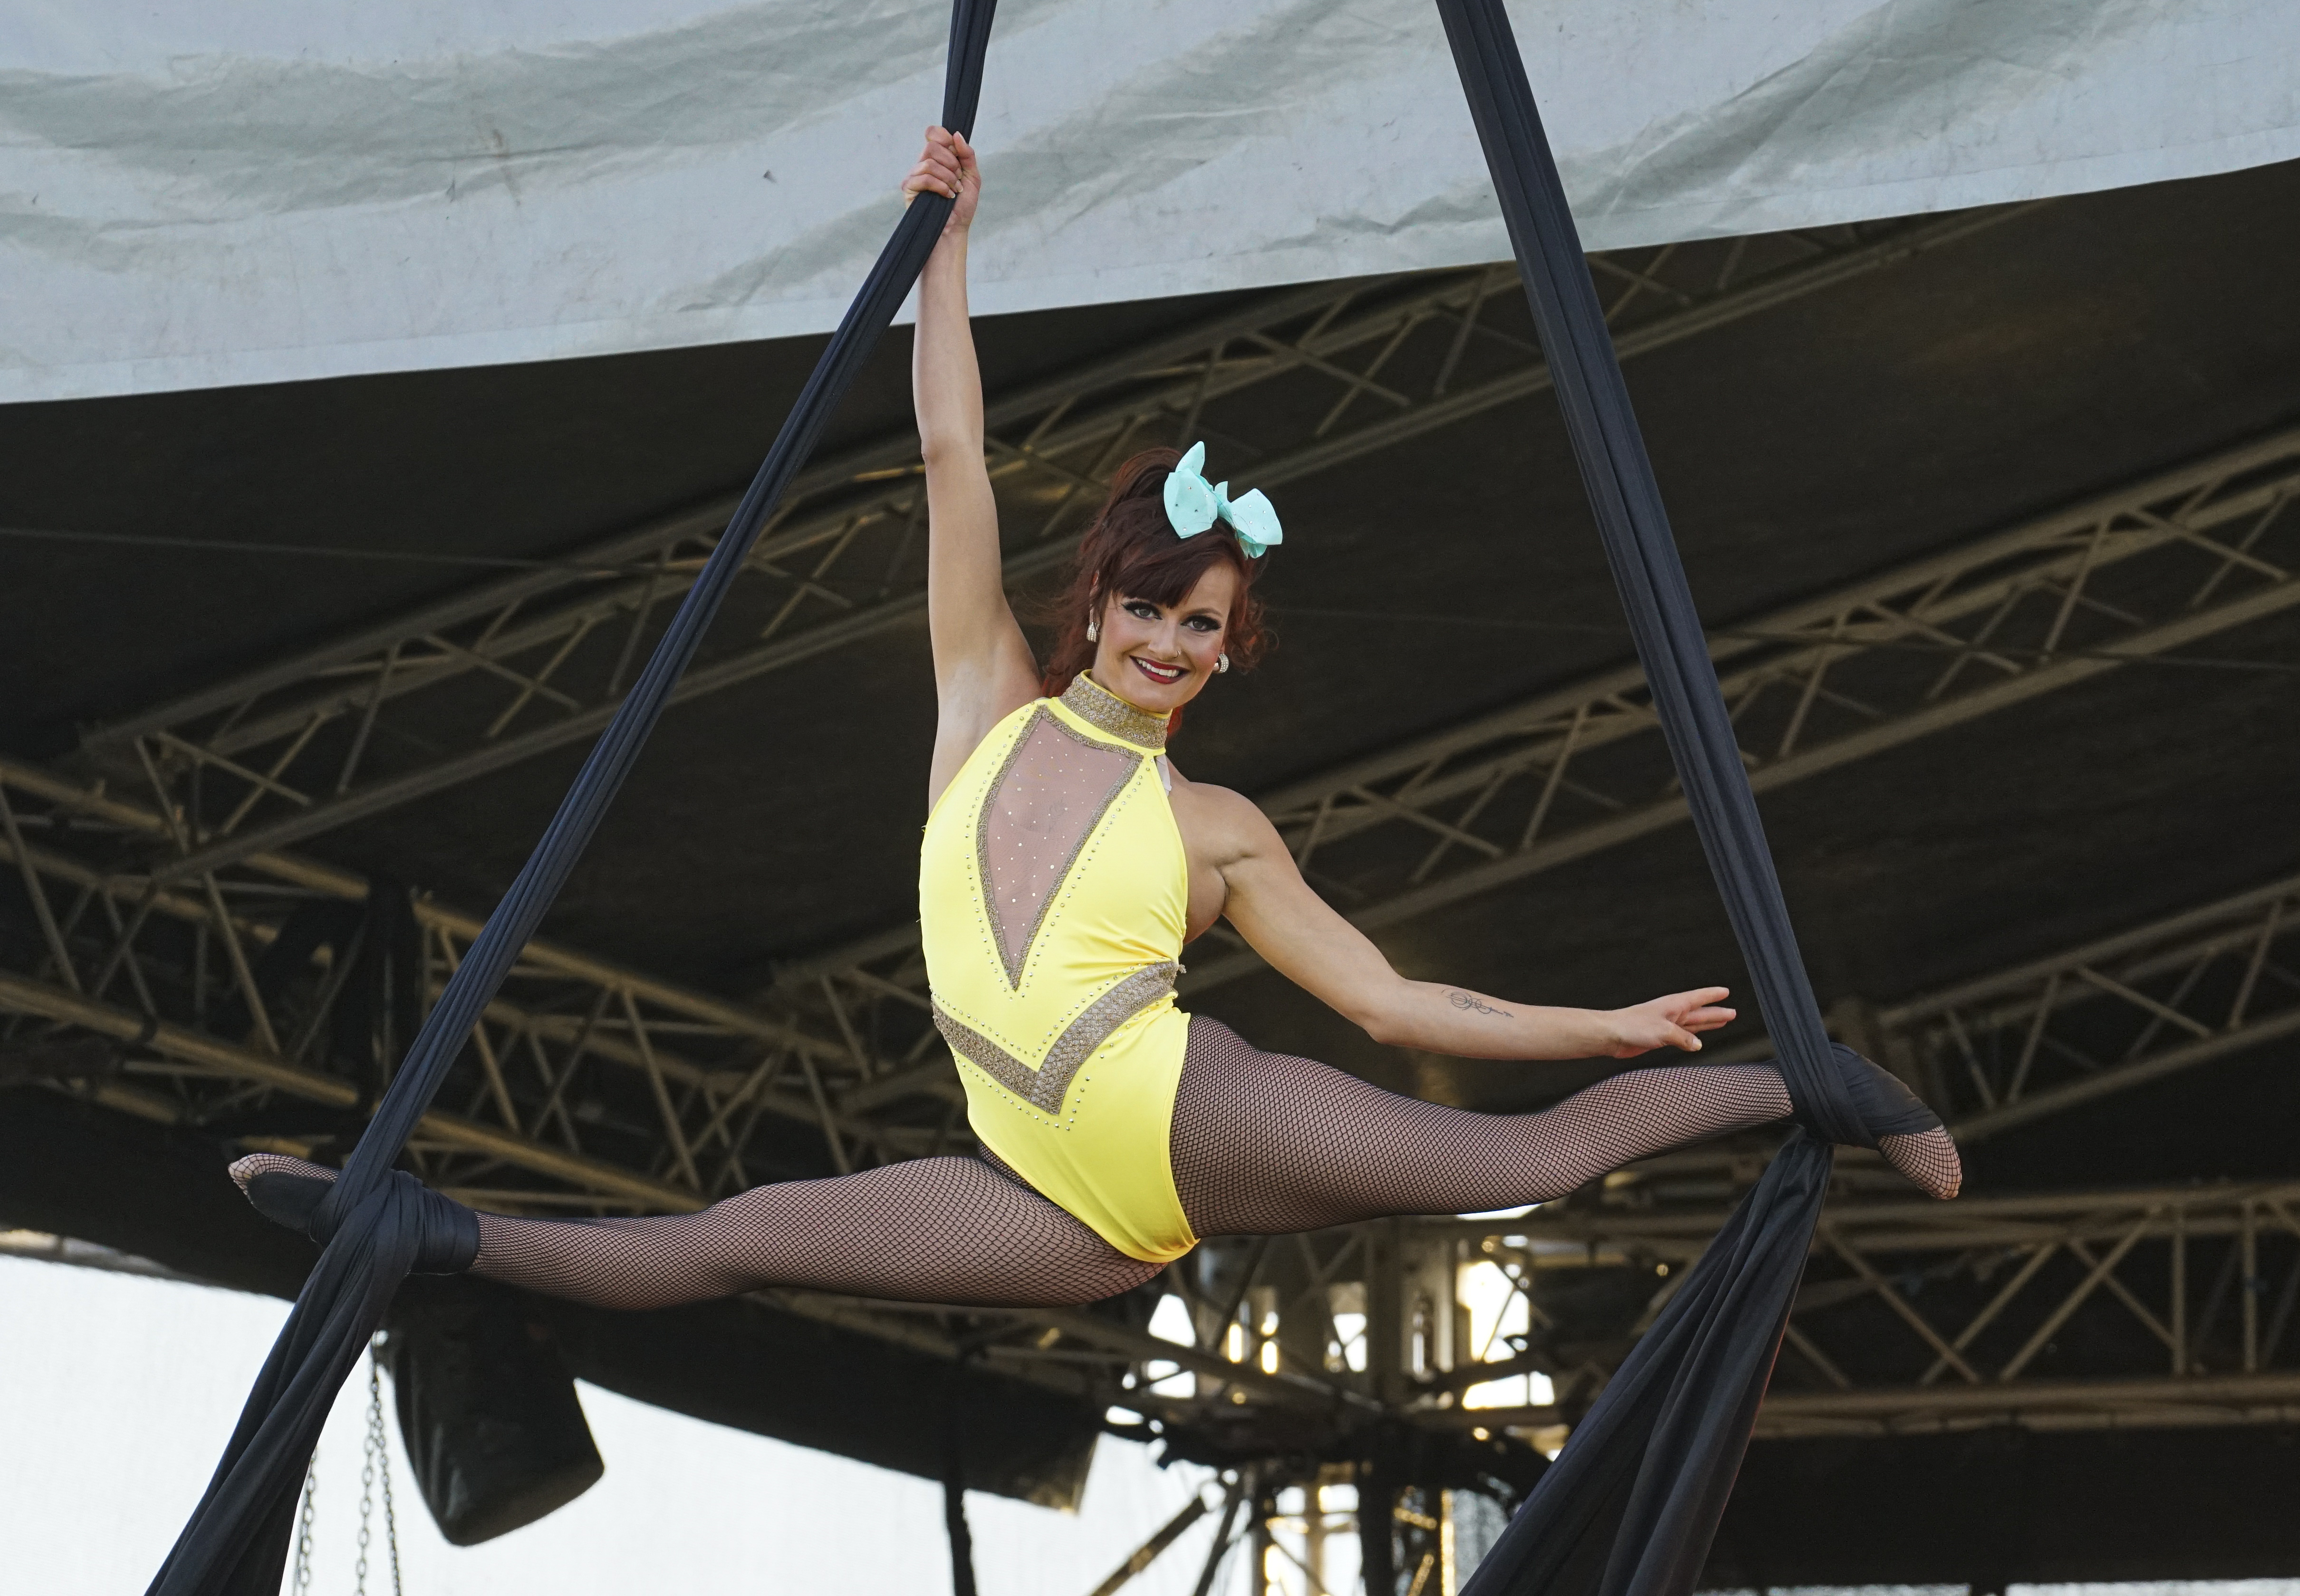 NEWQUAY, ENGLAND - JULY  19: The circus performers show their skills on the opening night of Britain's first ever drive-in circus performed by The Paulos Circus on July 19, 2020, at Circus Field, Newquay, Cornwall, United Kingdom. Formed in 1816, The Paulos Circus is Britain's oldest circus. The holiday season commenced in Cornwall on July 4th with the lifting of restrictions on hotels, holiday lets and camp sites after three months shutdown. (Photo by Hugh R Hastings/Getty Images)